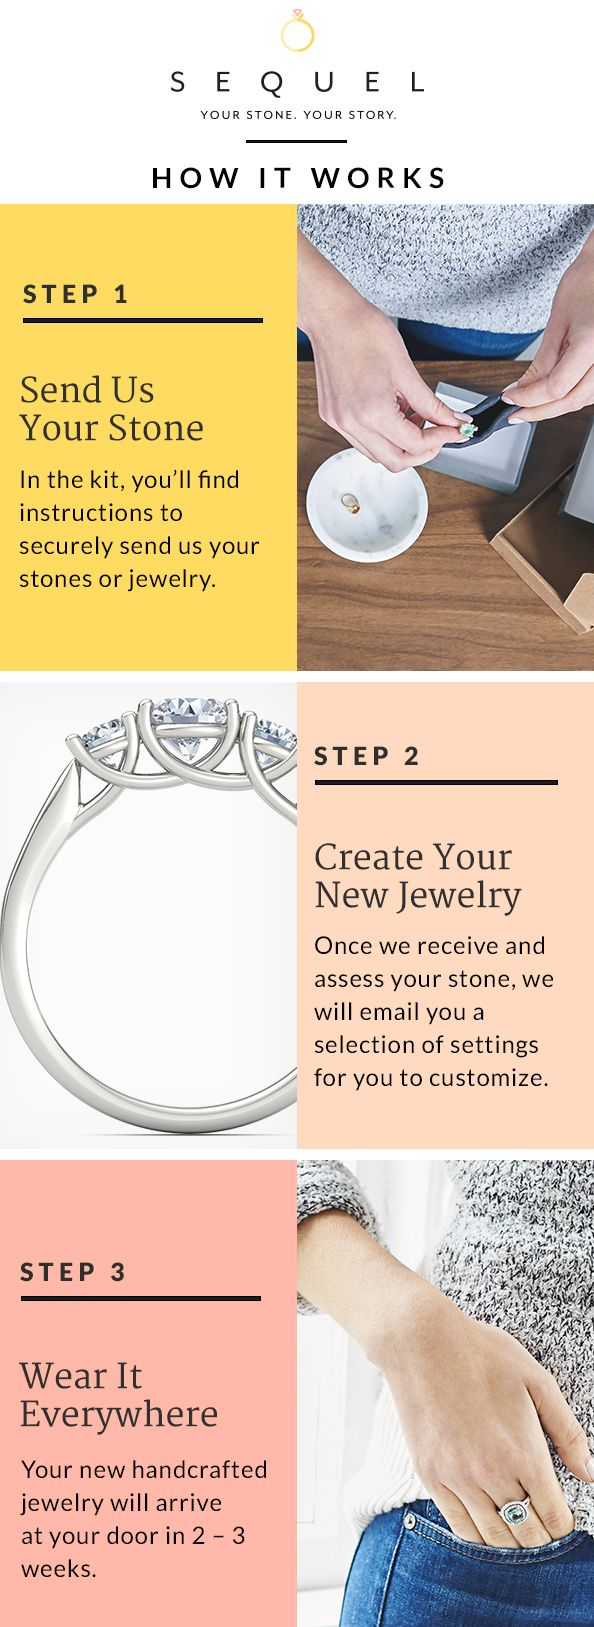 3 easy (and fun!) steps to create your dream piece. It's free to explore your options, and there's no obligation if you change your mind. Request your shipping kit today at http://sequel.gemvara.com!